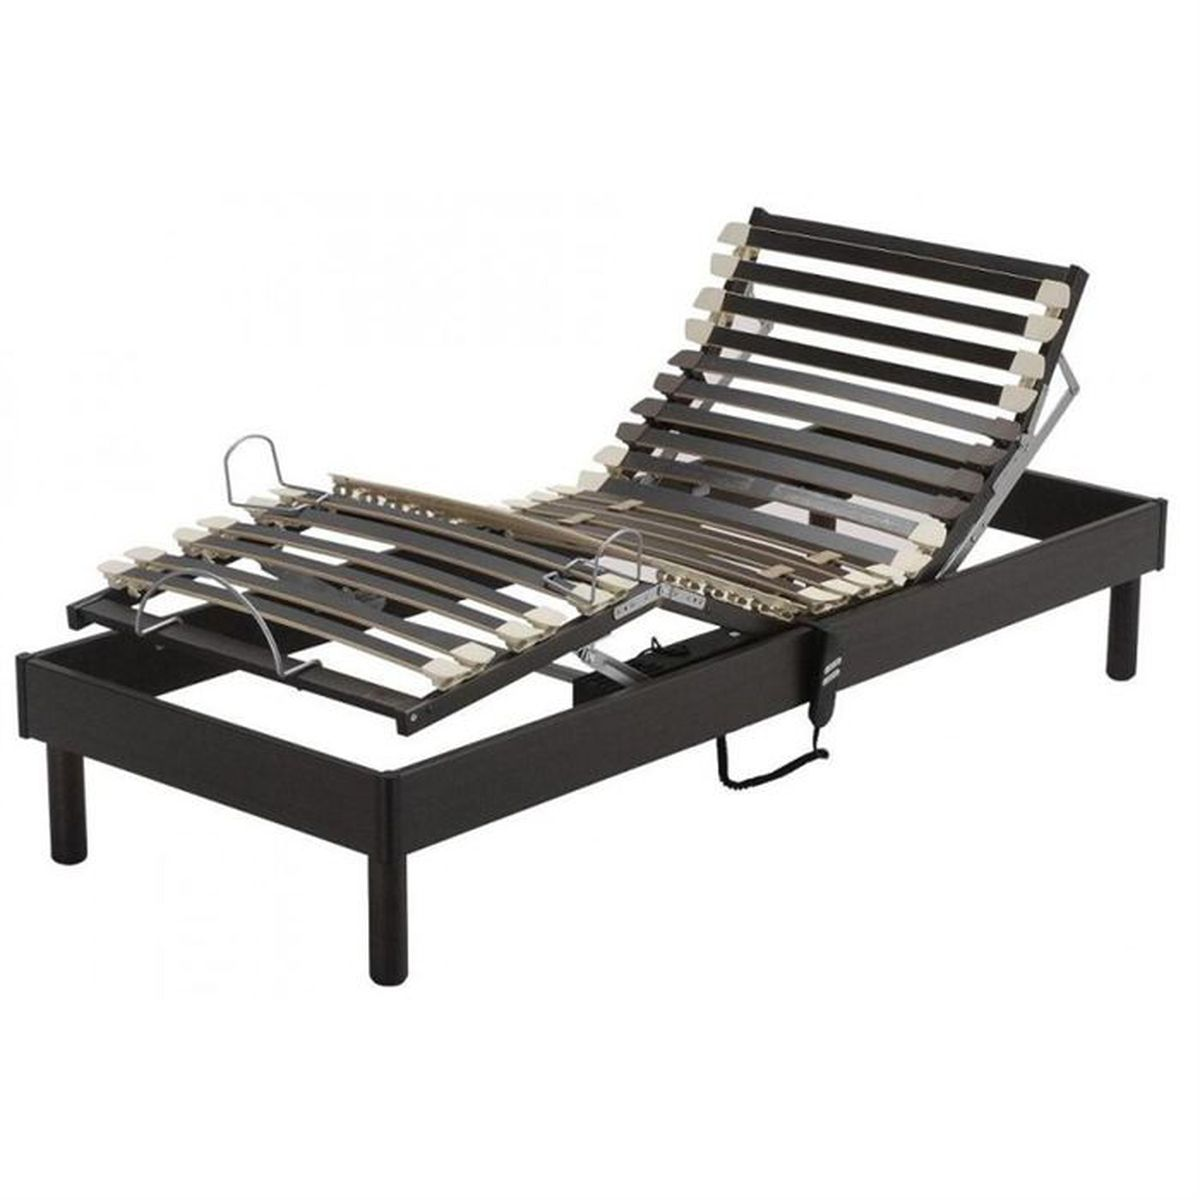 Sommier Someo Relaxation Electrique 90x190 Achat Vente Sommier